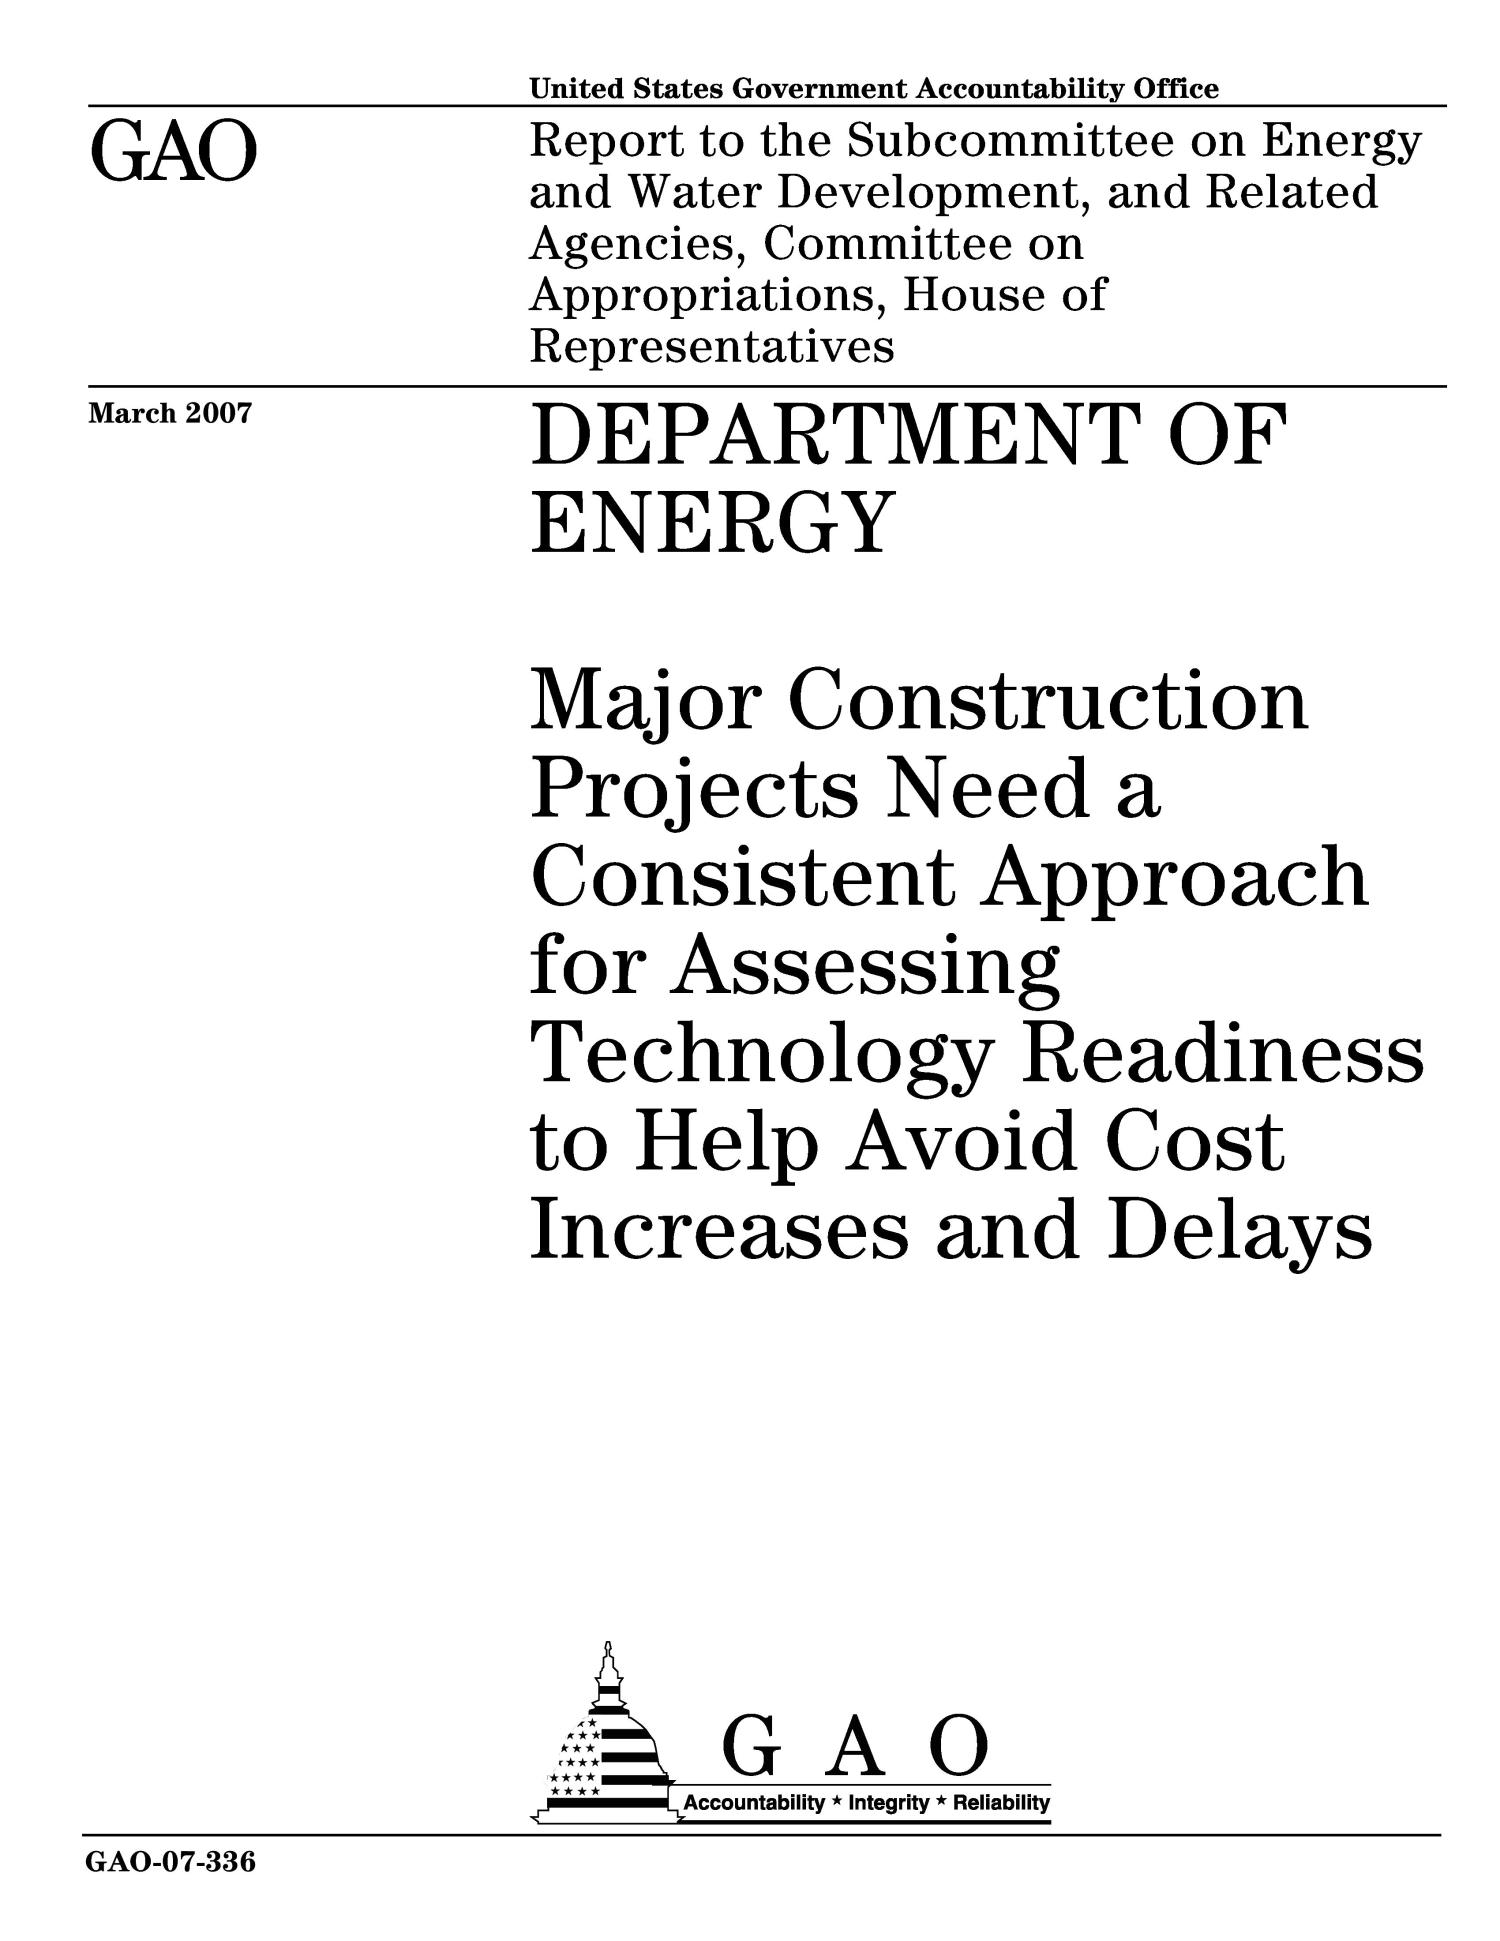 Department of Energy: Major Construction Projects Need a Consistent Approach for Assessing Technology Readiness to Help Avoid Cost Increases and Delays                                                                                                      [Sequence #]: 1 of 55